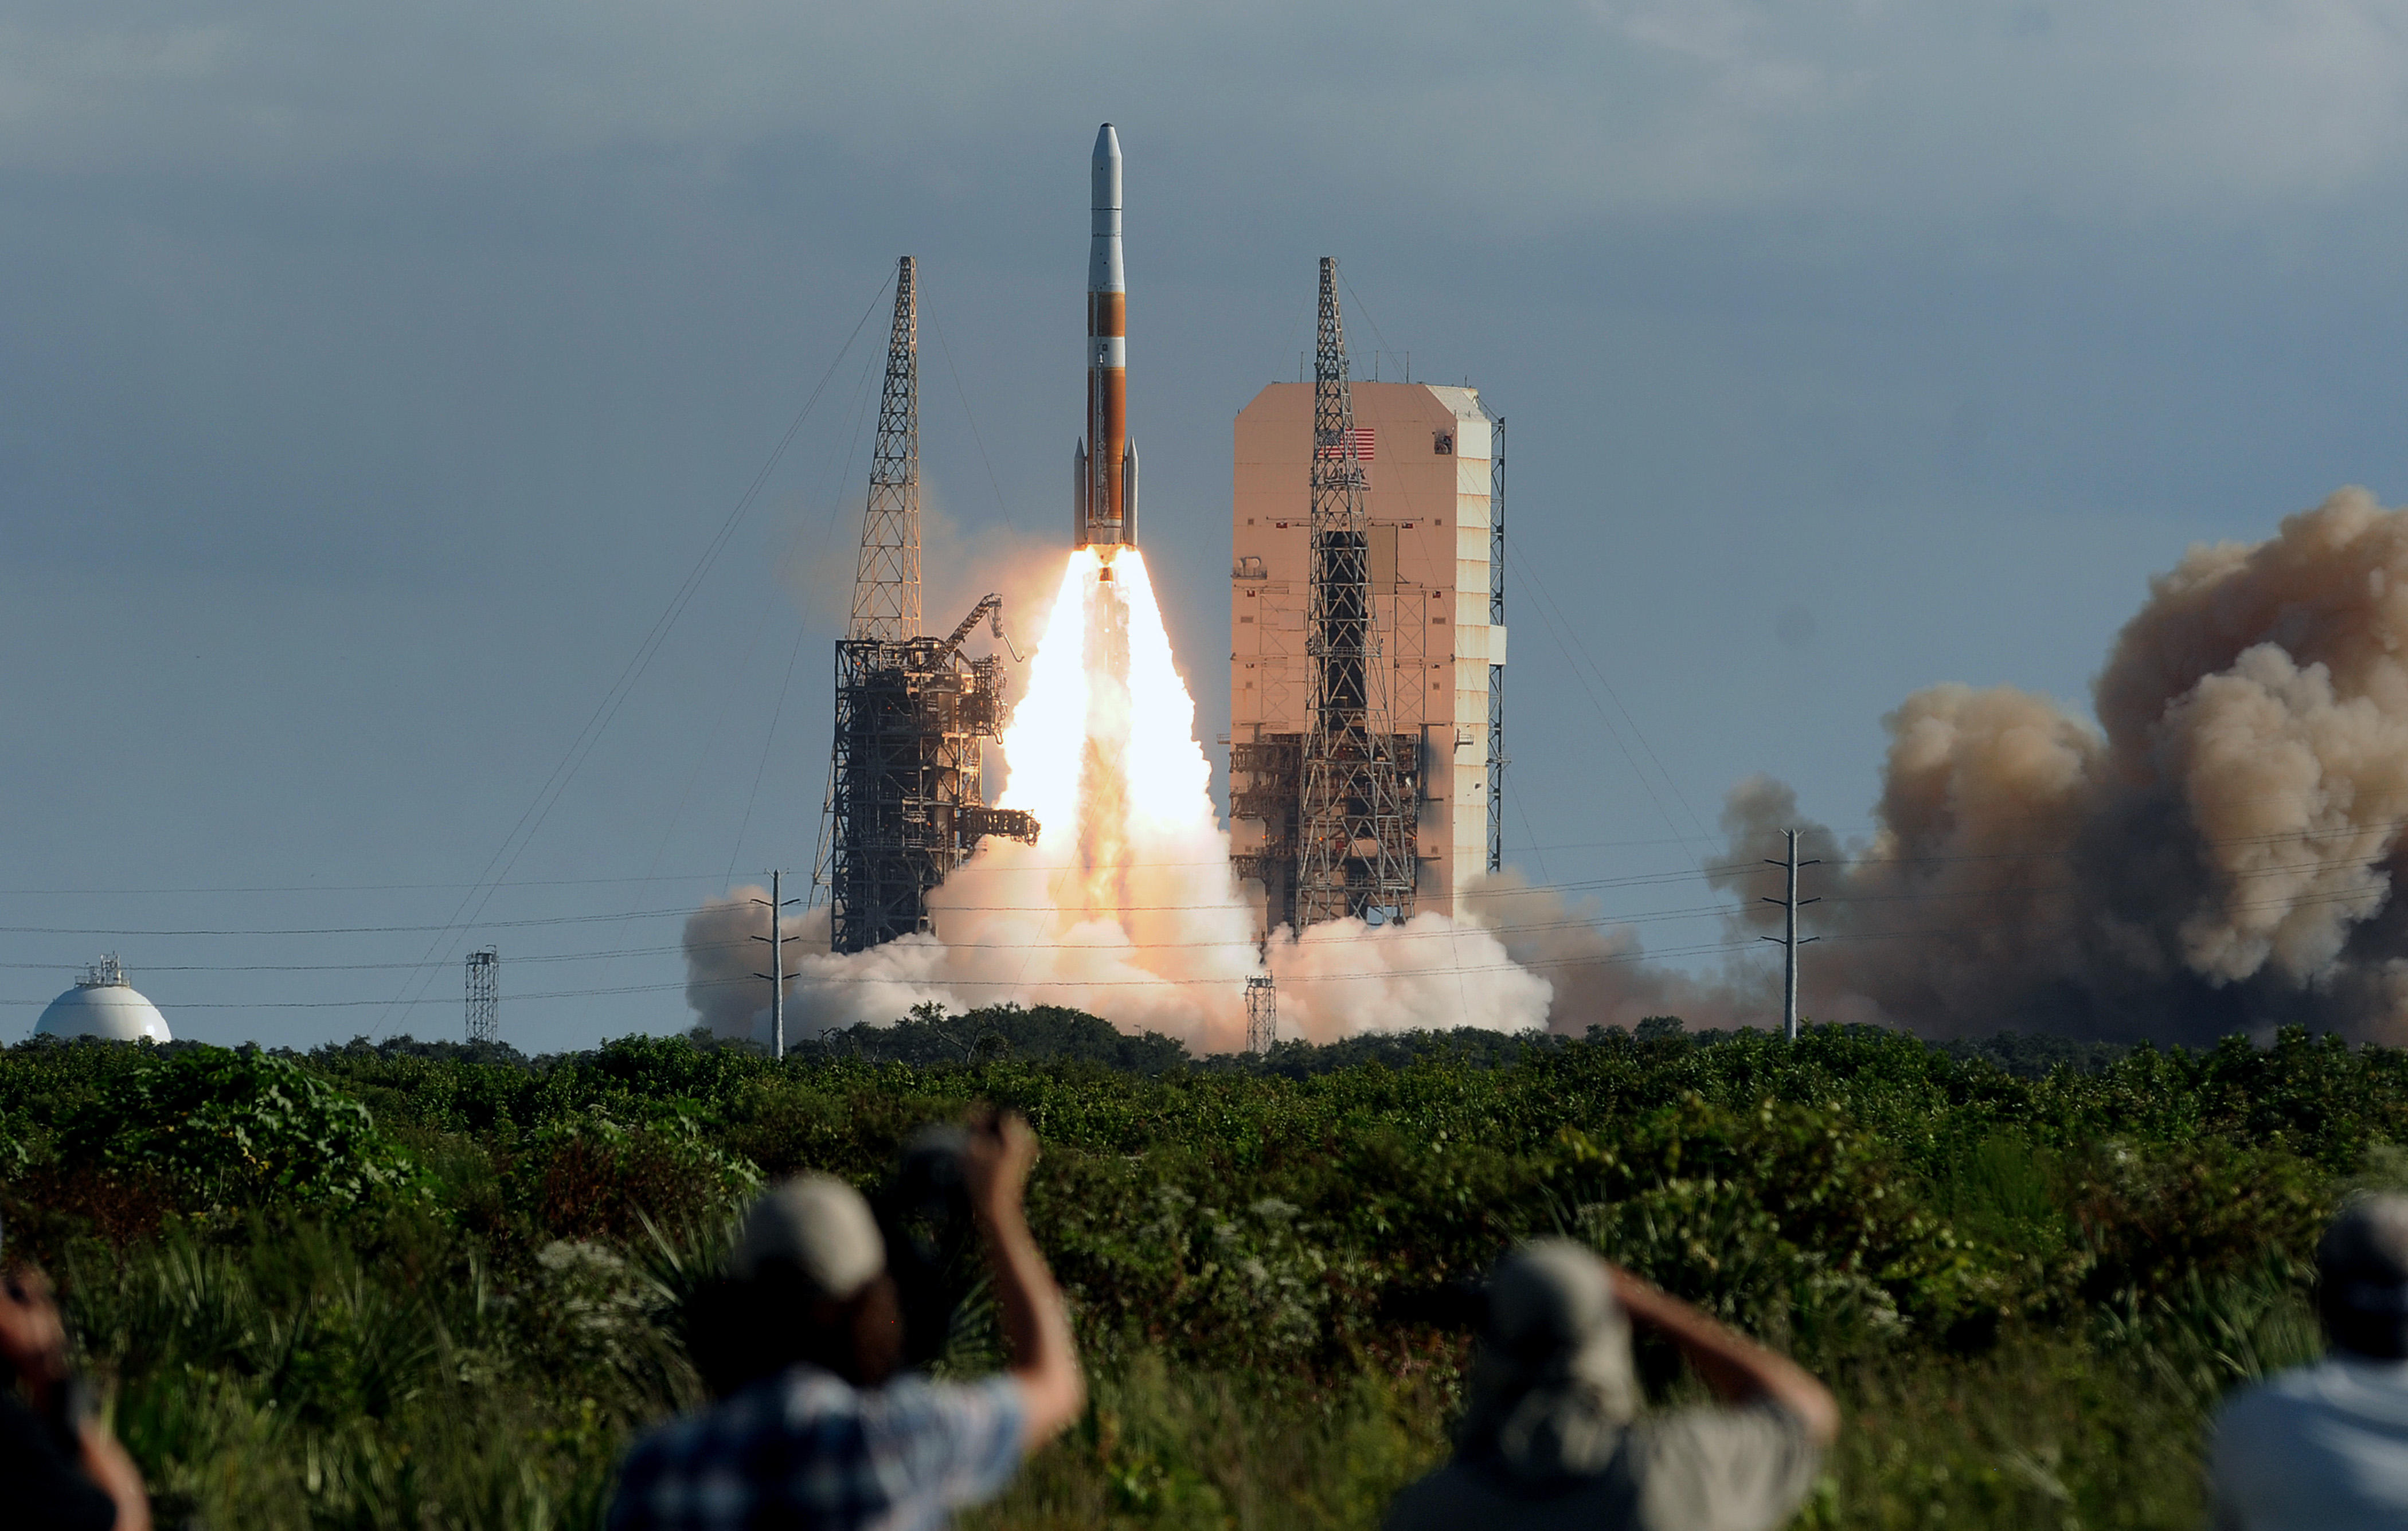 A United Launch Alliance Delta IV rocket in space at complex